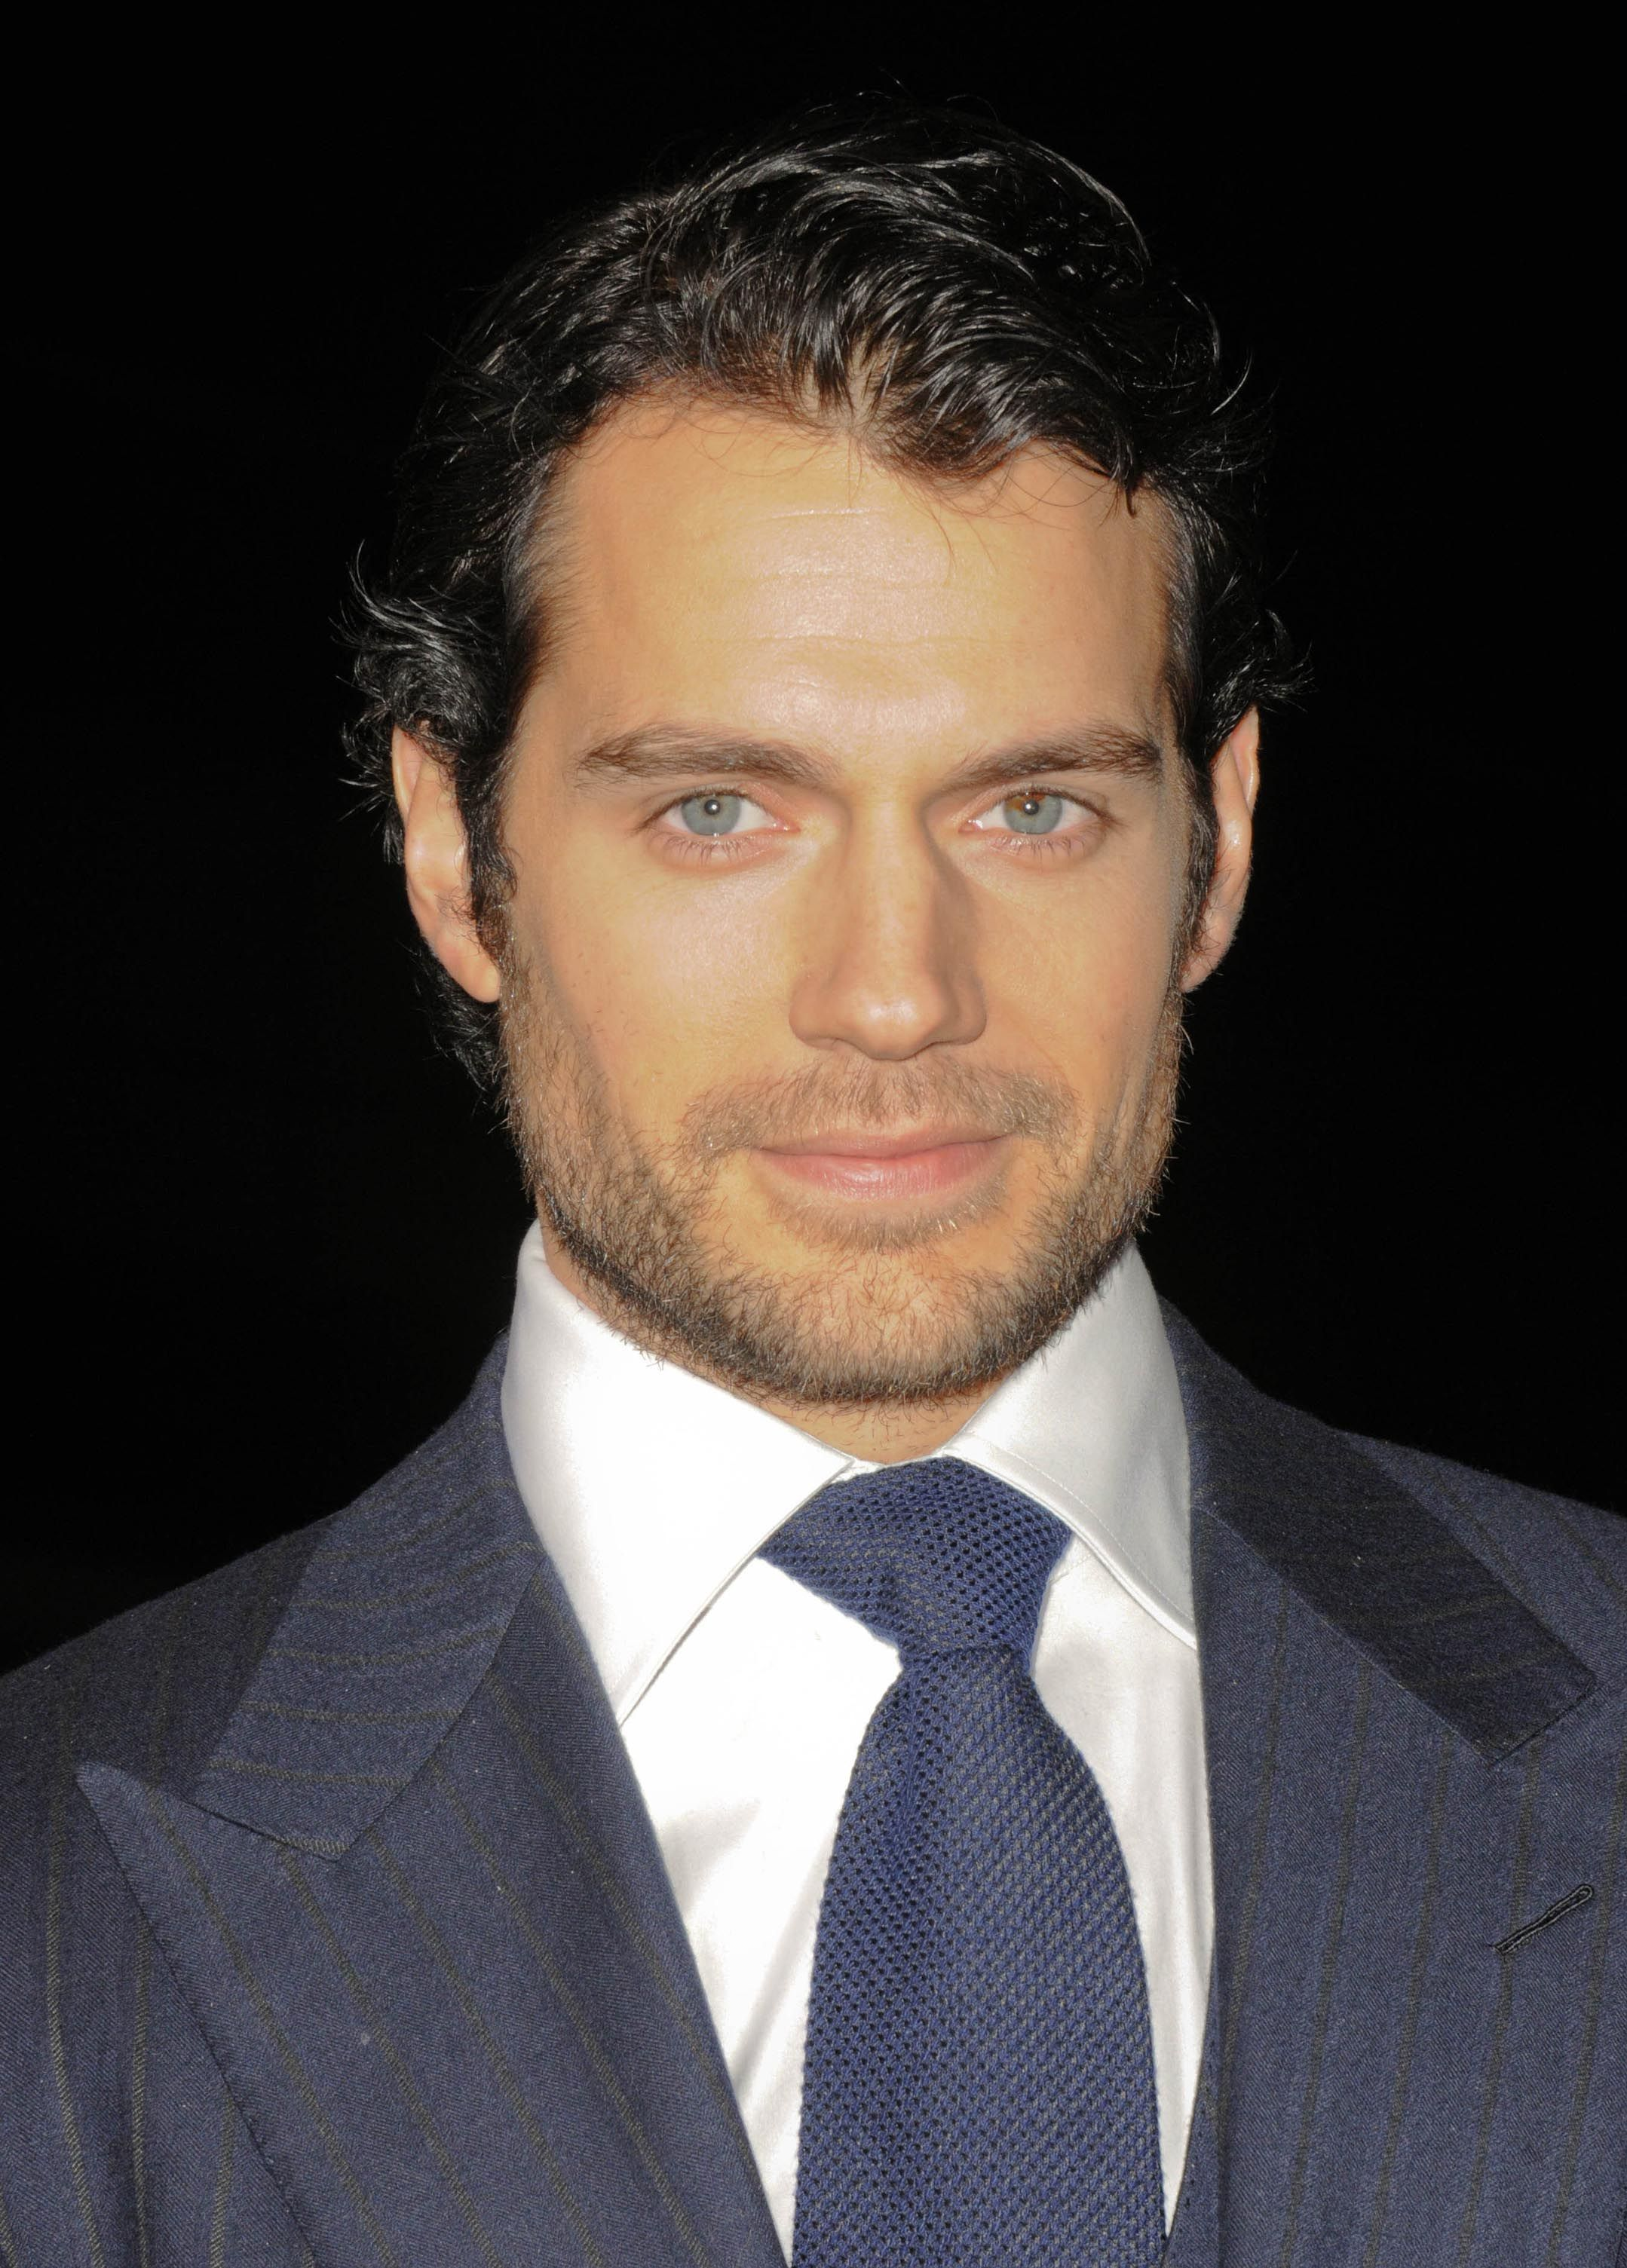 Henry Cavill at the Immortals premiere in LA, part 1